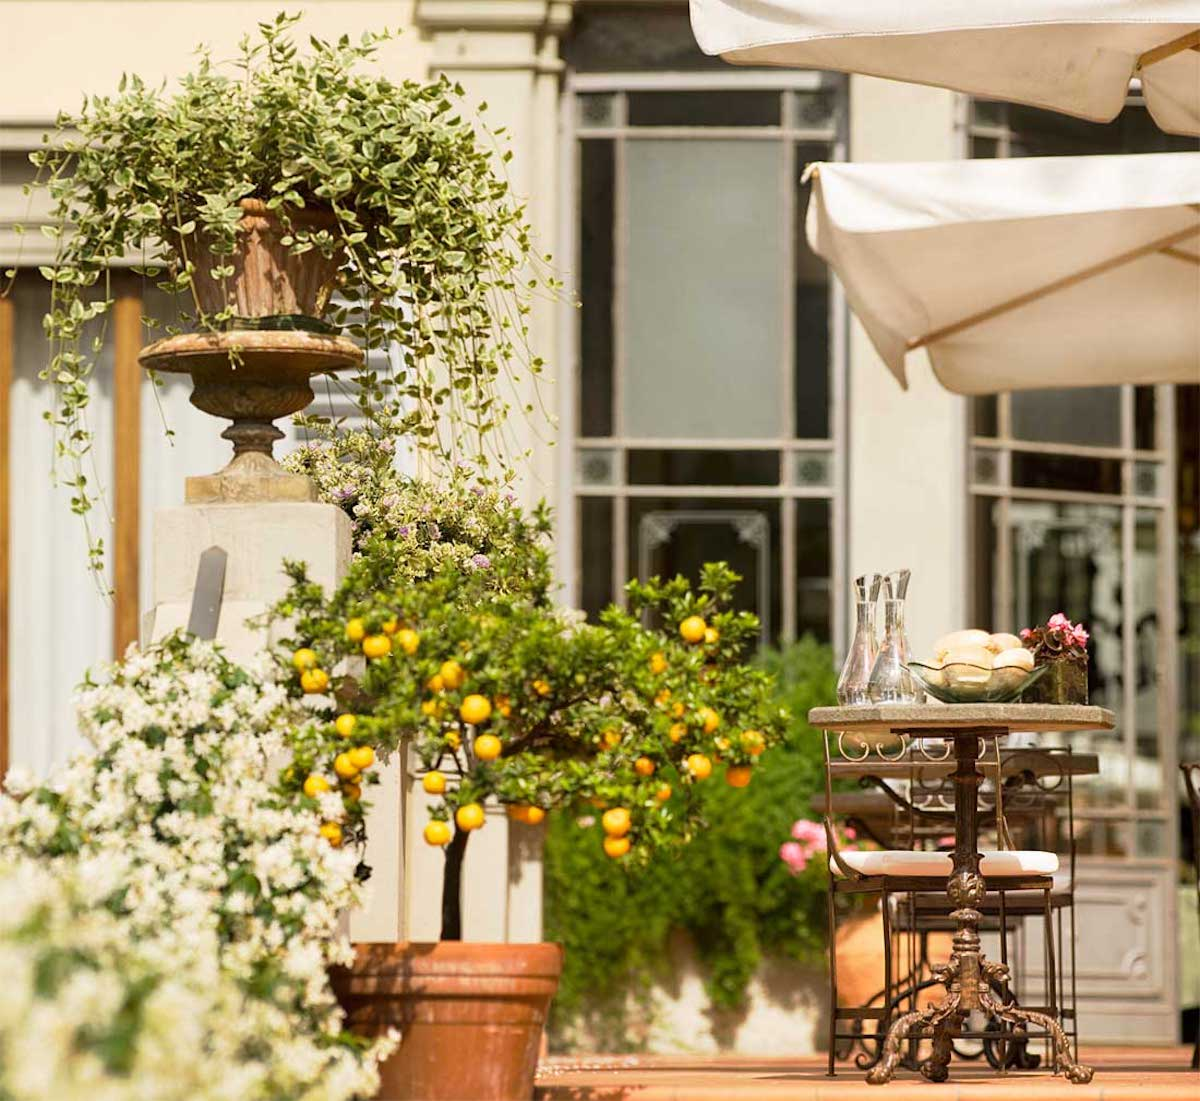 Hotel Orto de' Medici: A Great Discovery in Florence